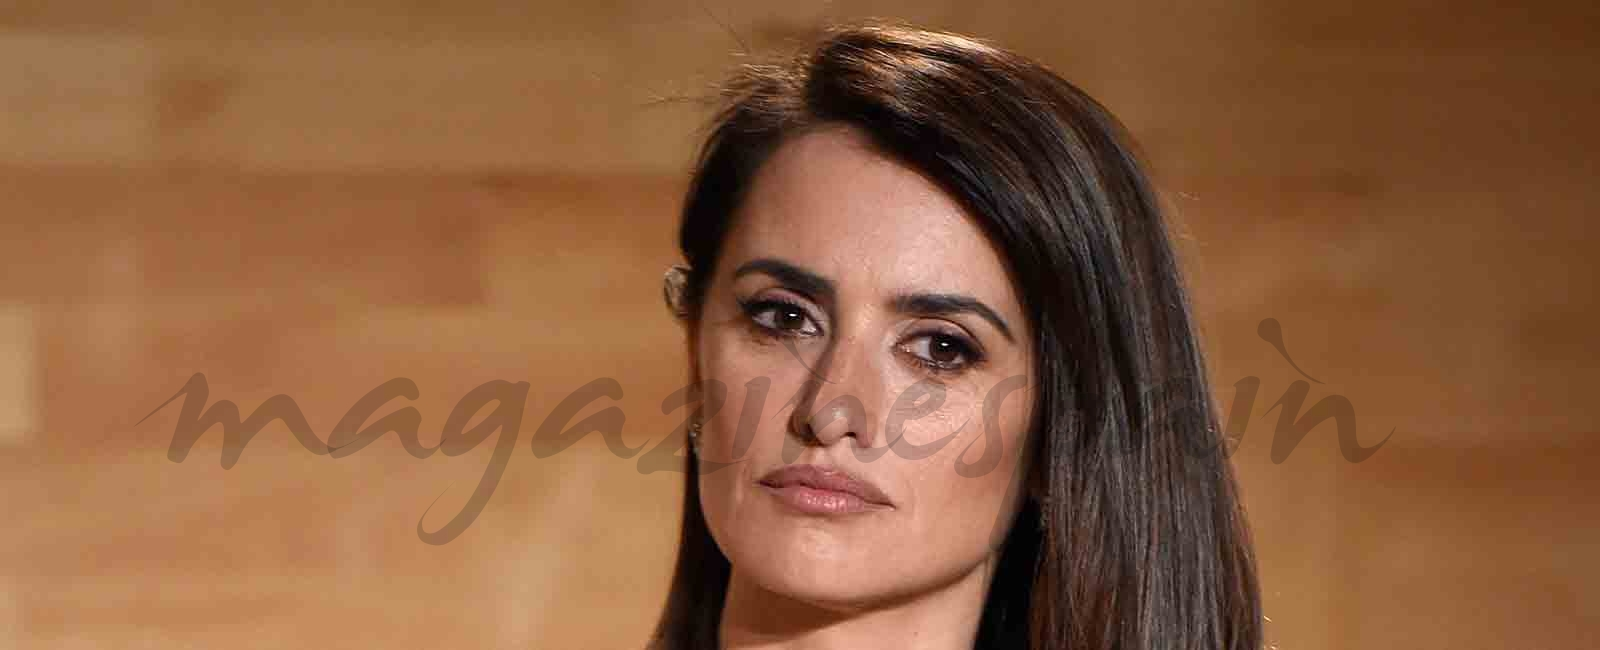 Así eran, Así son: Penélope Cruz 2006-2016 -VIDEO